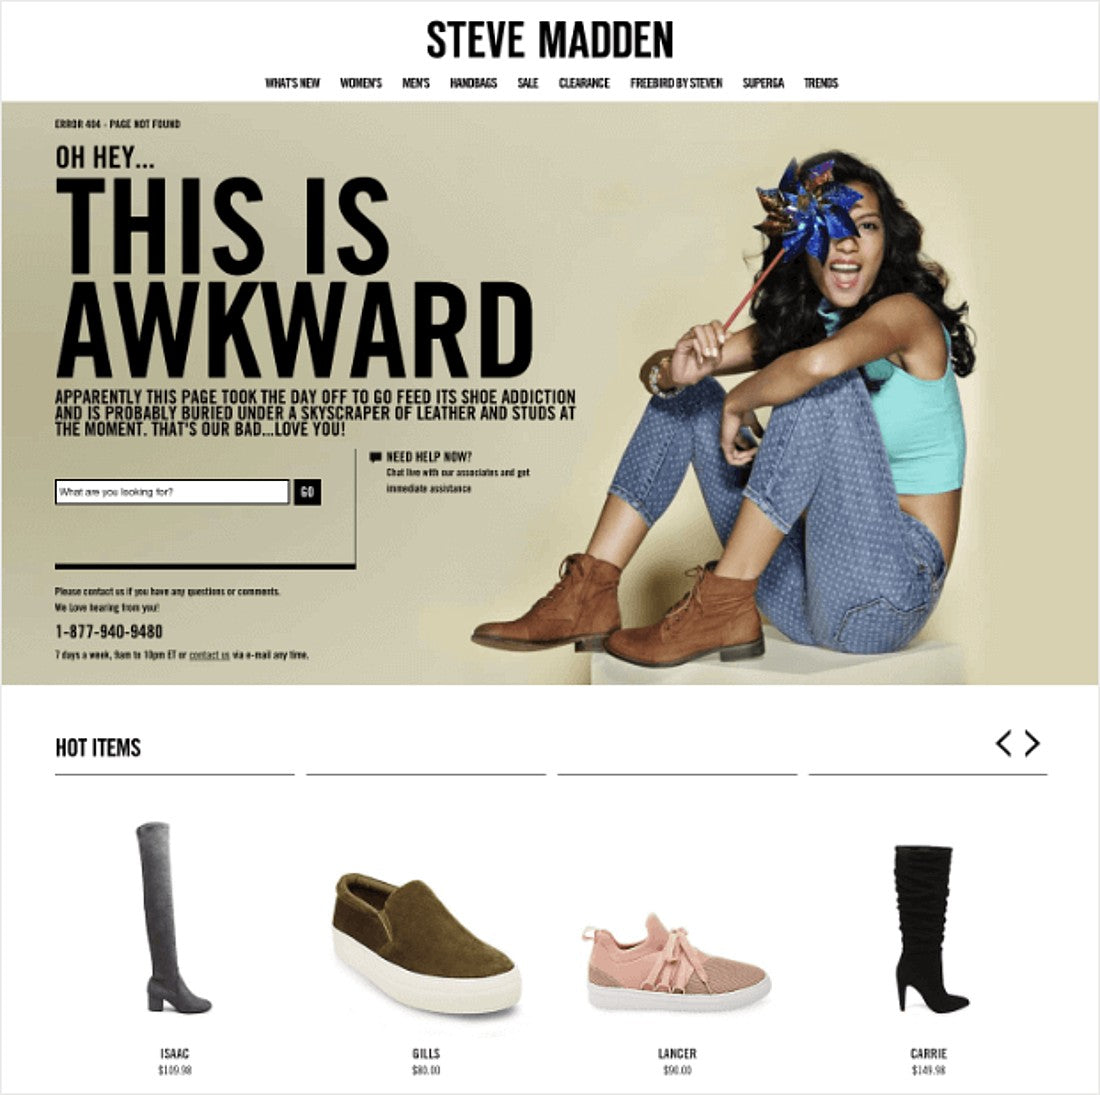 Steven Madden 404 Page Example